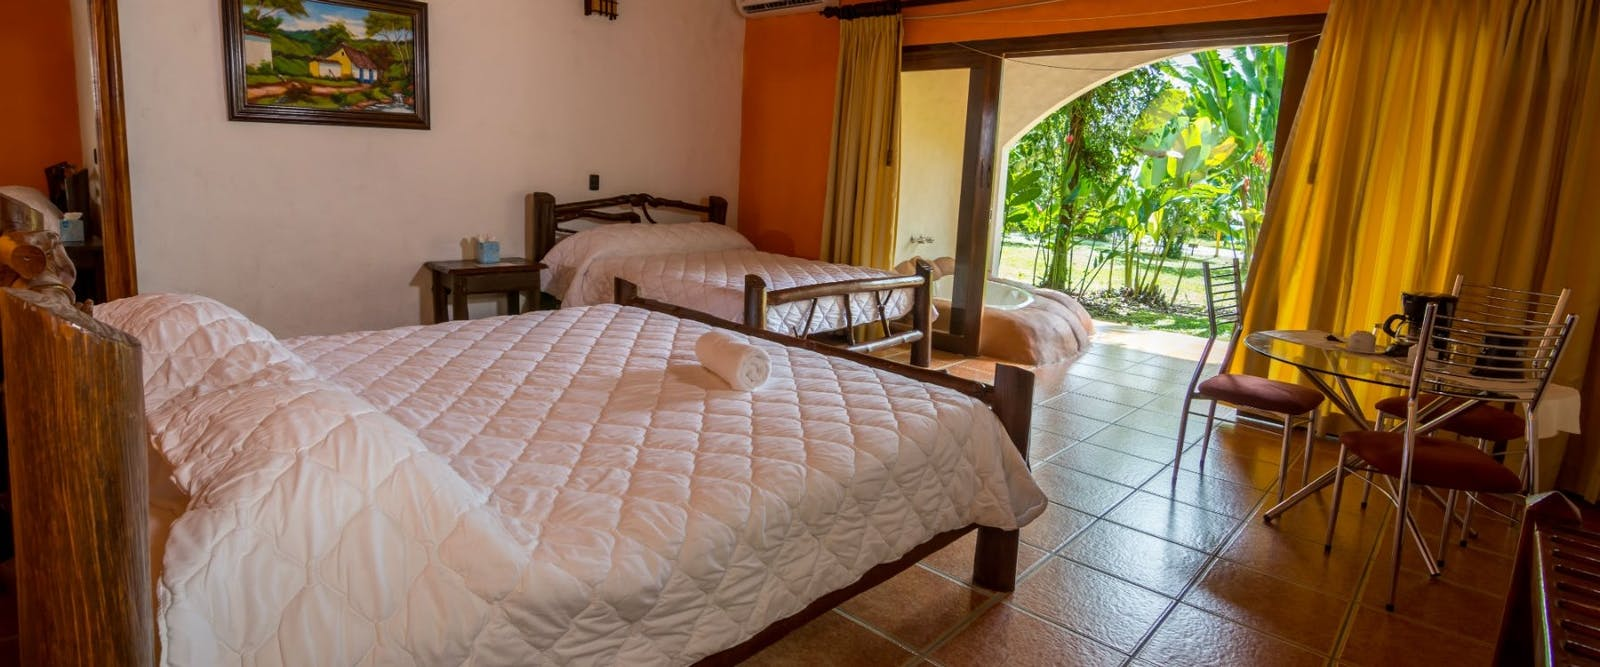 Premium casita room, Mountain Paradise Hotel